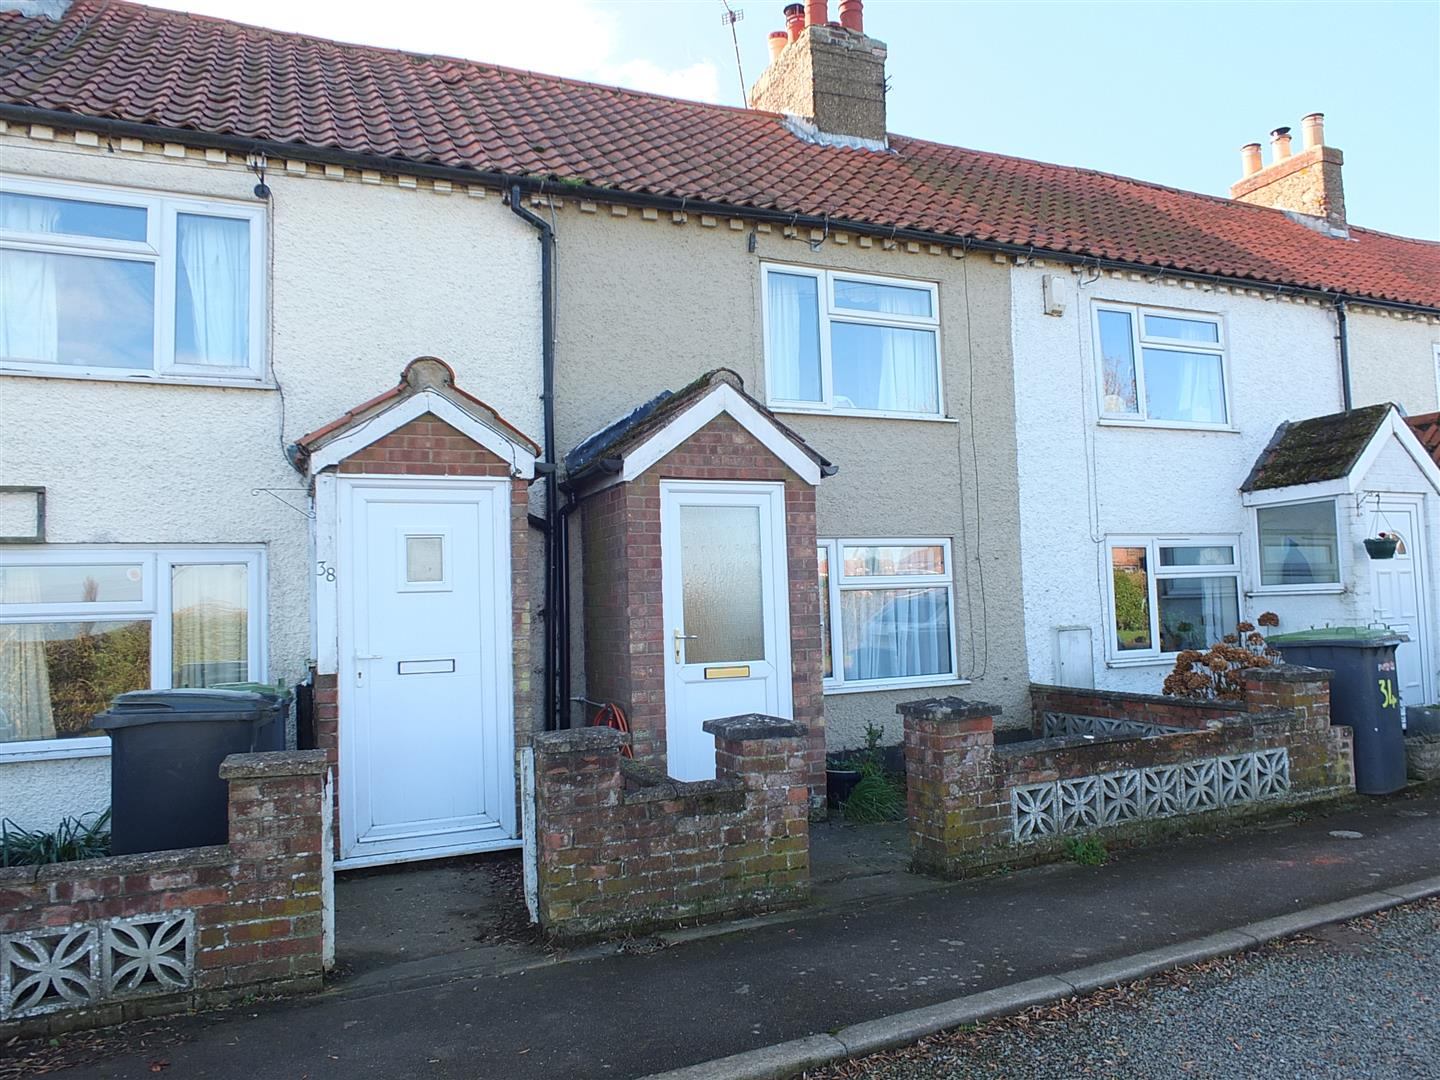 2 bedroom property in Osbournby, Sleaford